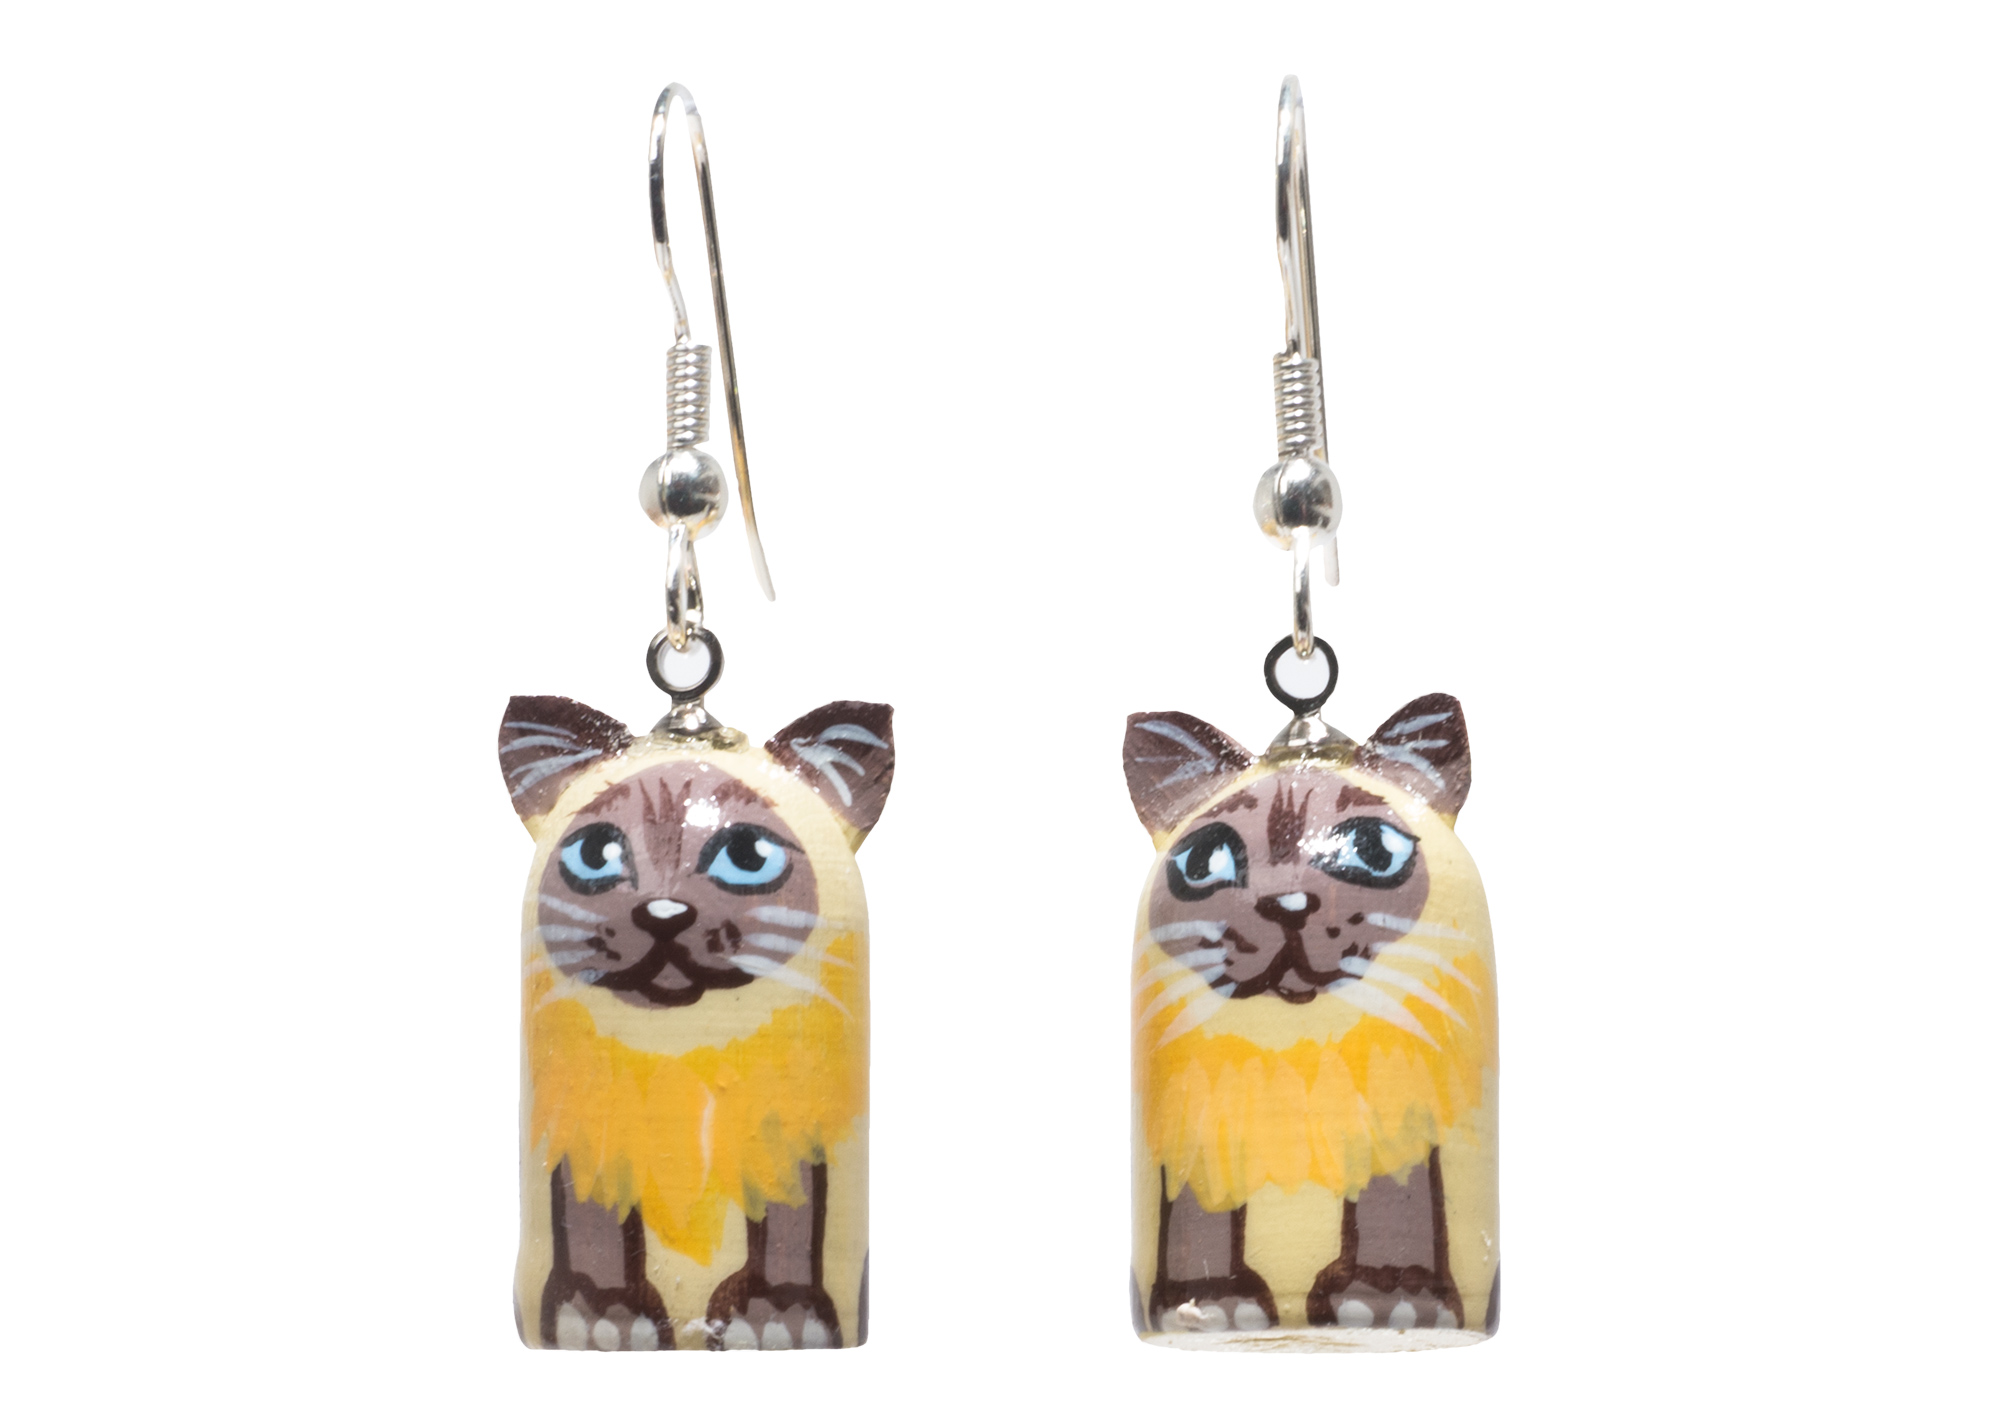 "Buy Realistic Cat Novelty Earrings .5""x.8"" at GoldenCockerel.com"